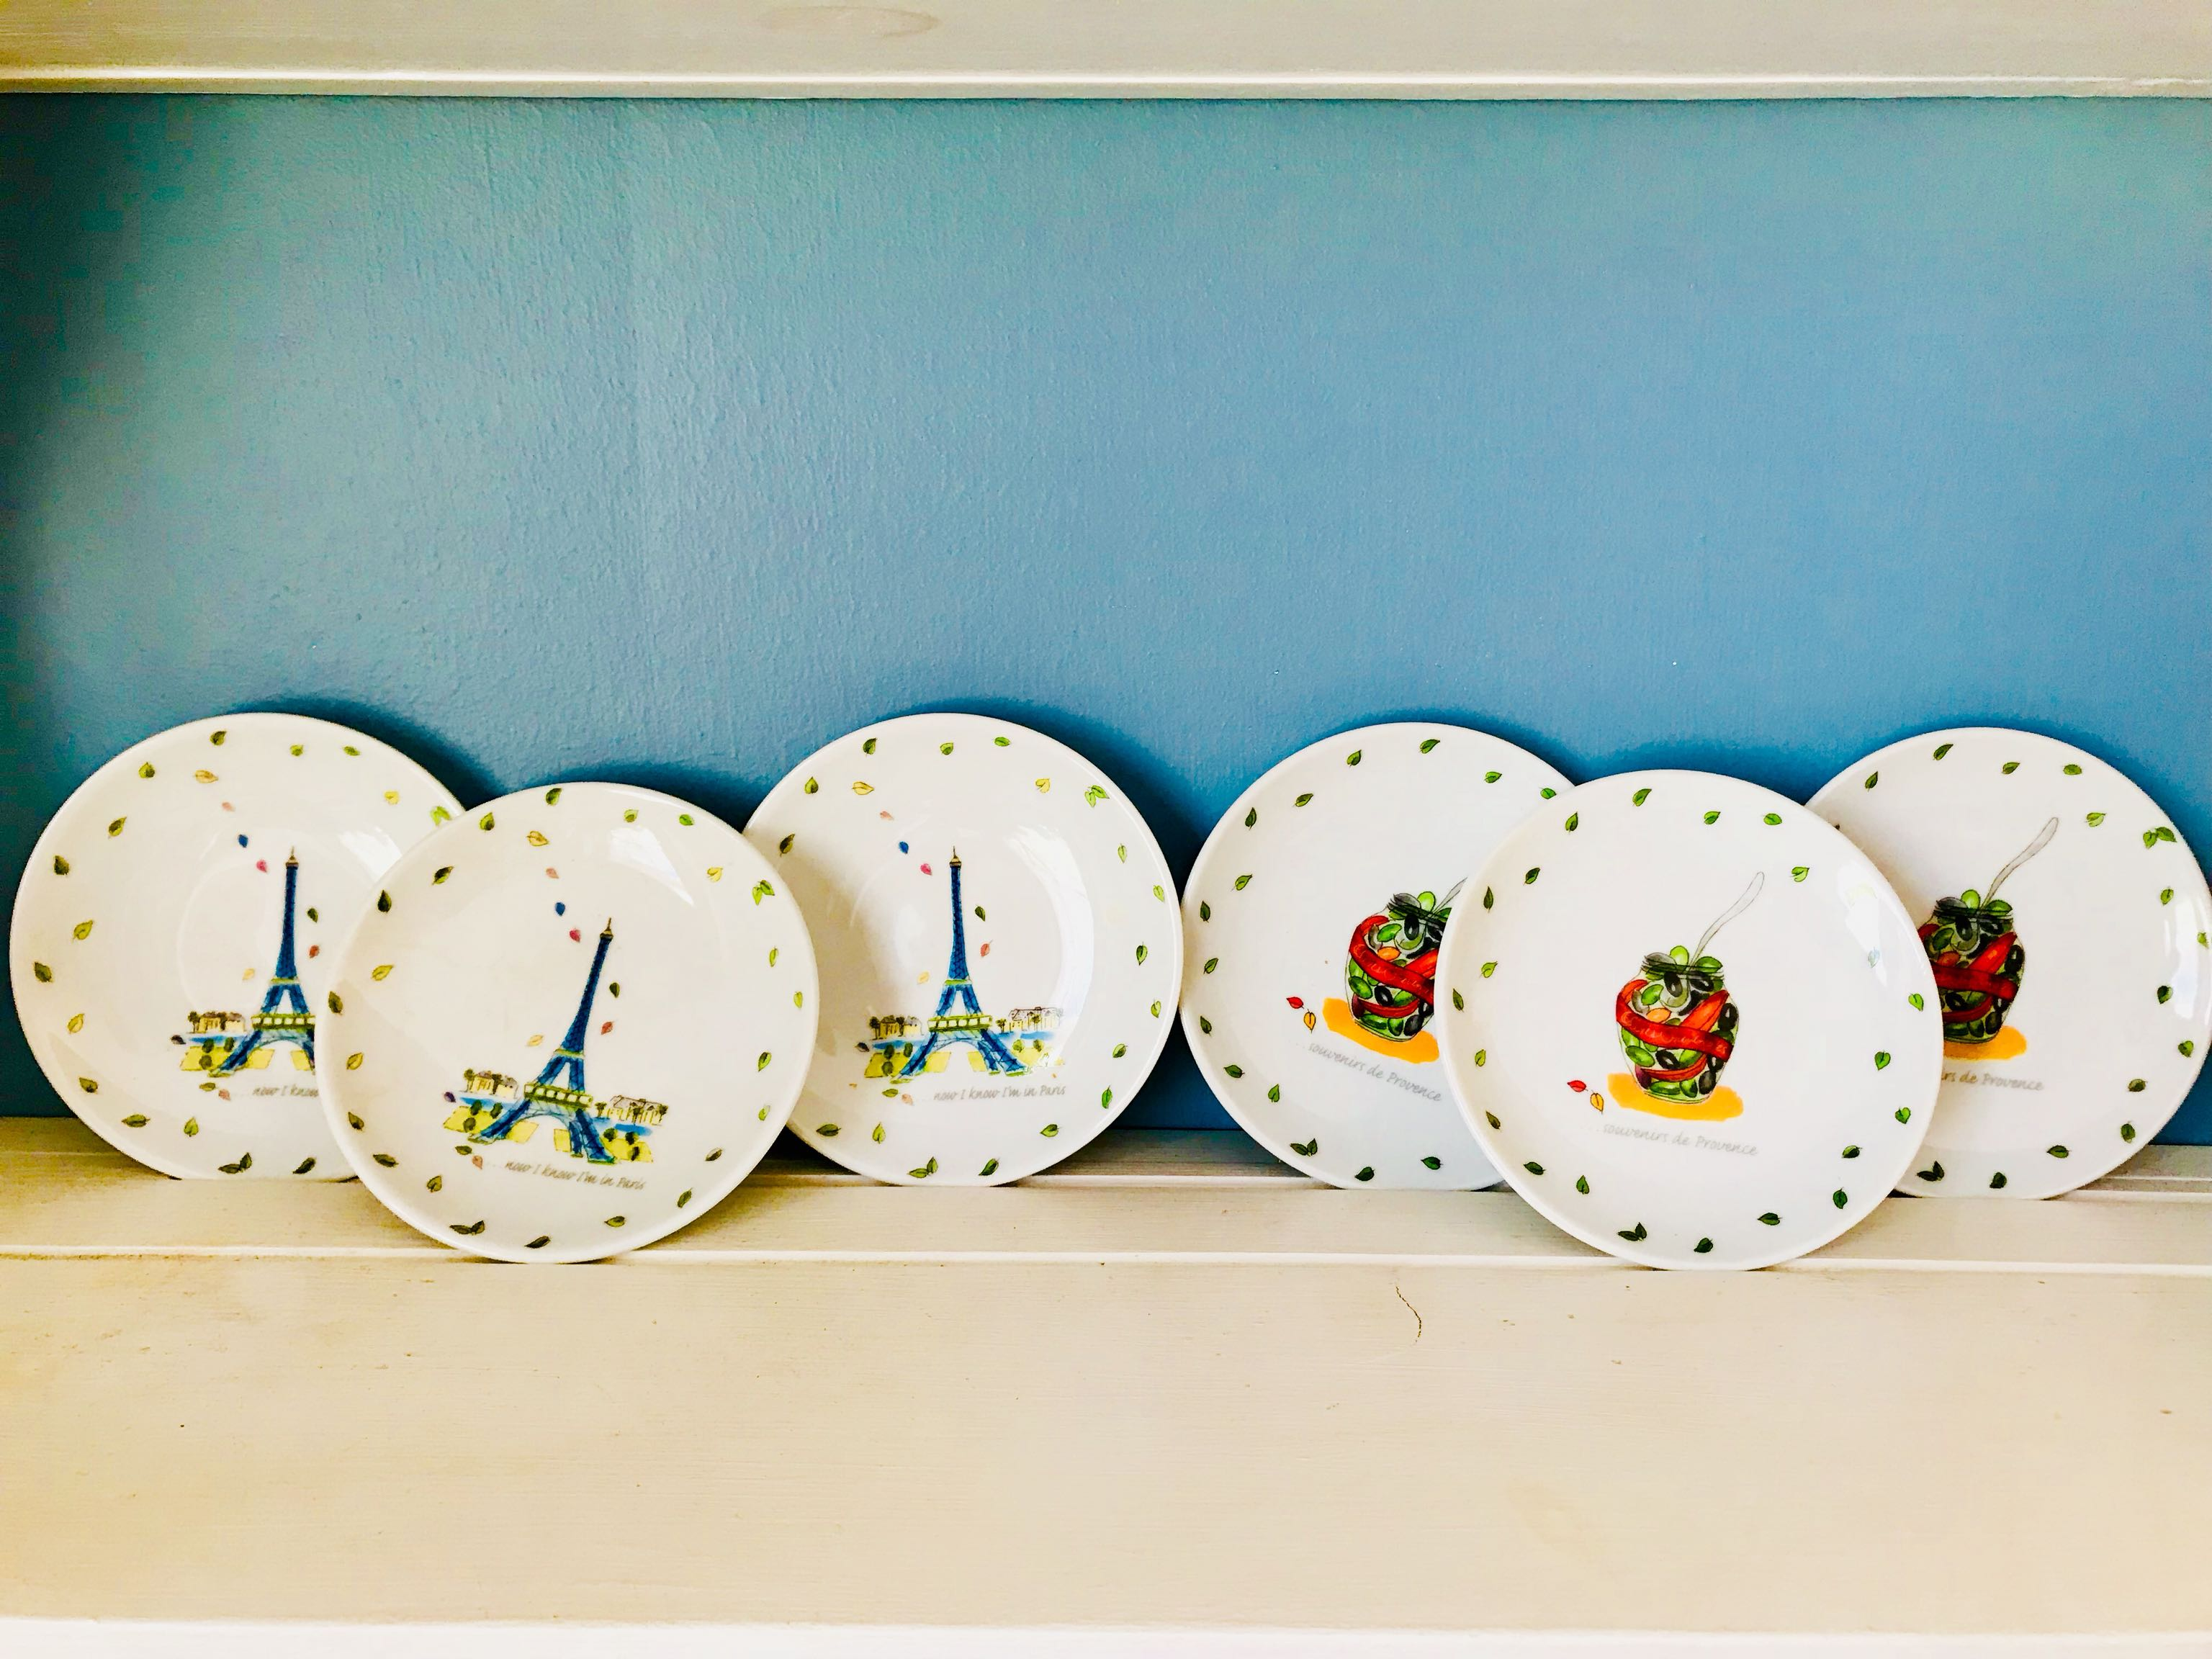 French Hors d'oeuvre Plates/Decorative Plates, cross posted